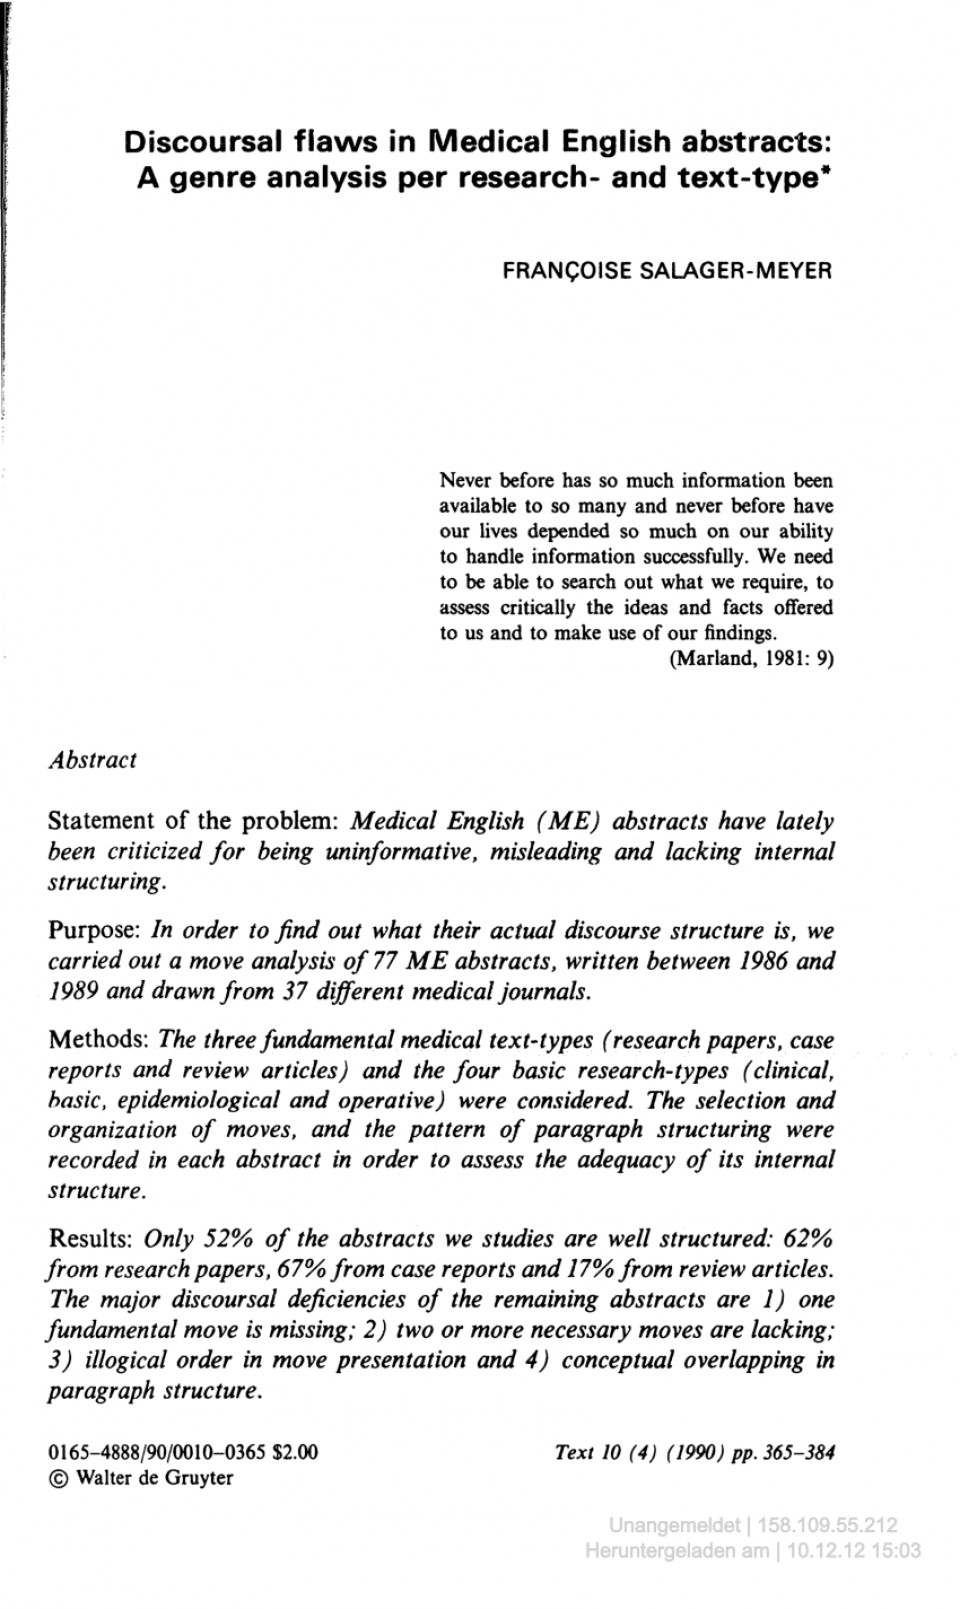 004 Abstract Research Paper Rare Example Introduction For Apa Style Pdf 960